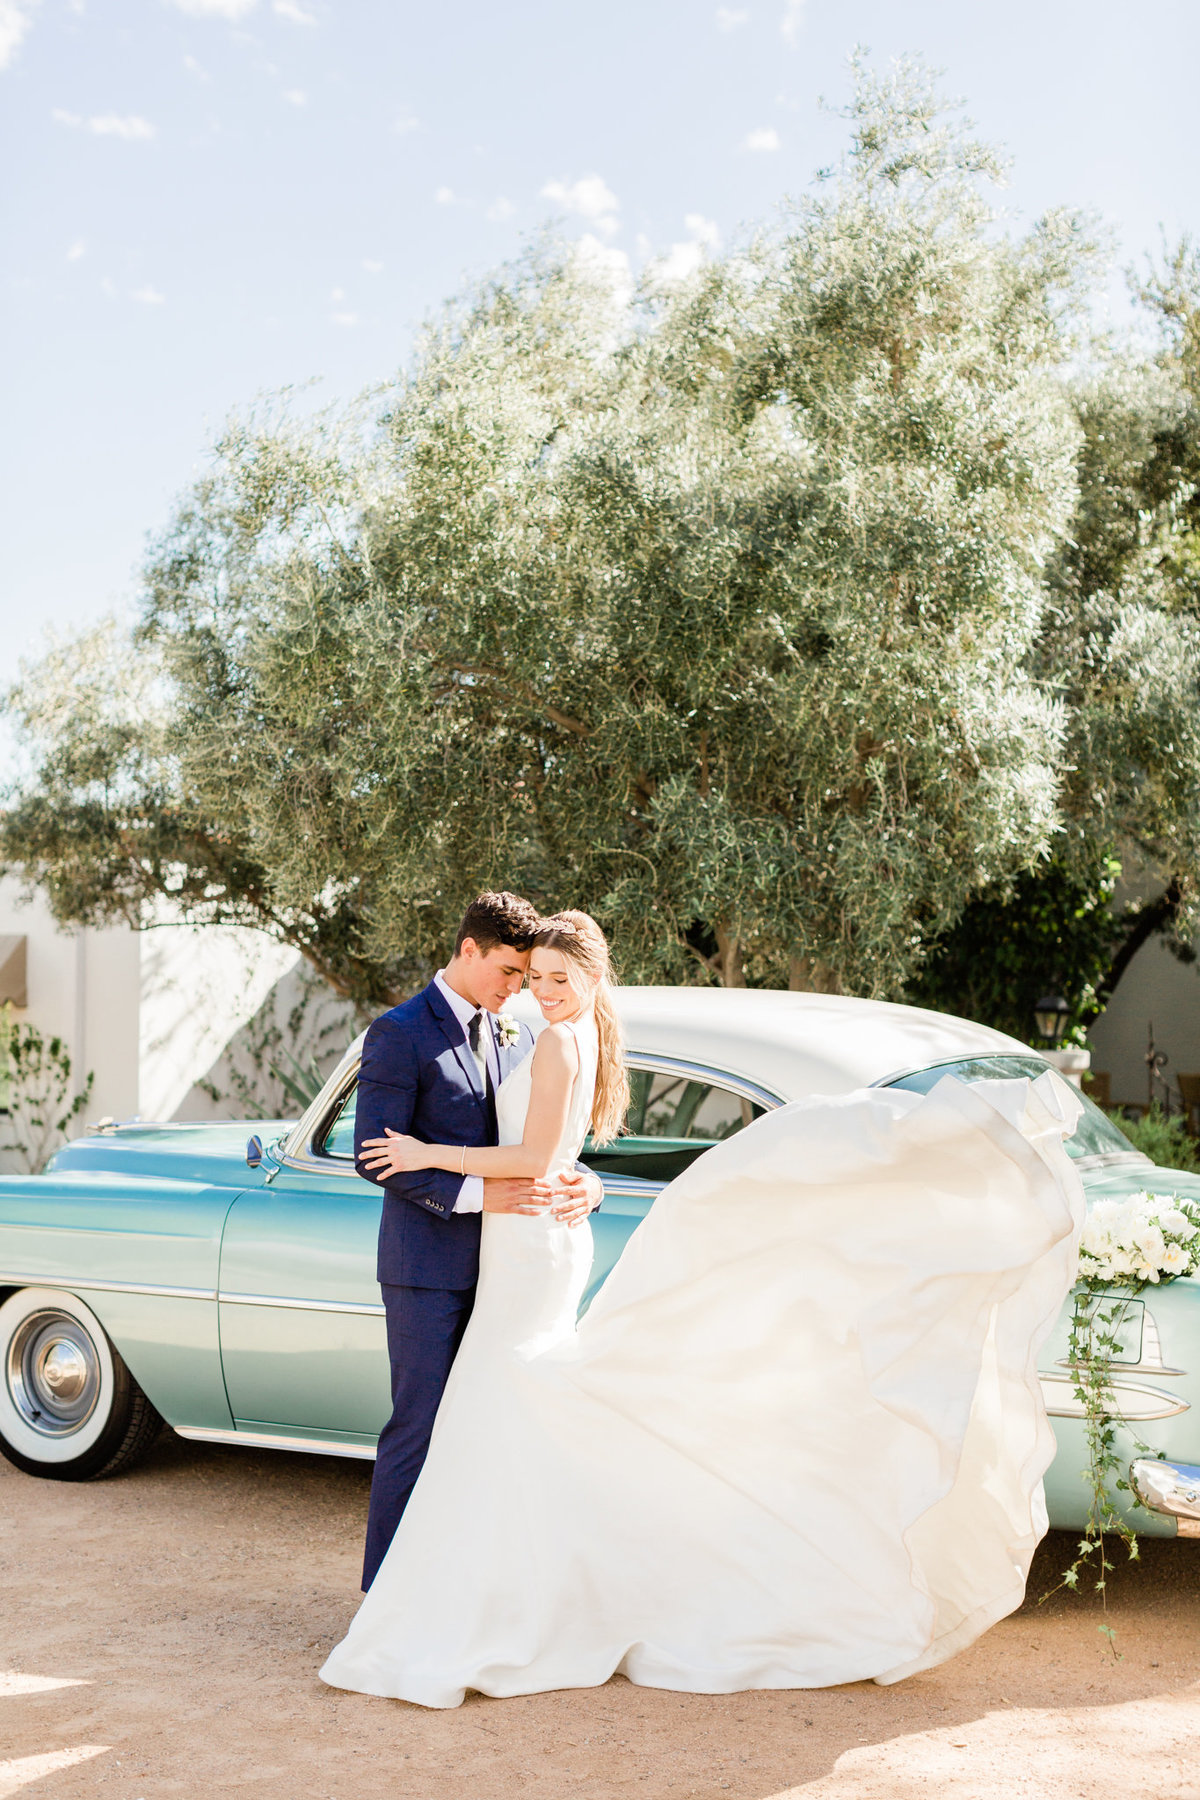 carriage house wedding gown blowing in the wind at el chorro arizona wedding venue